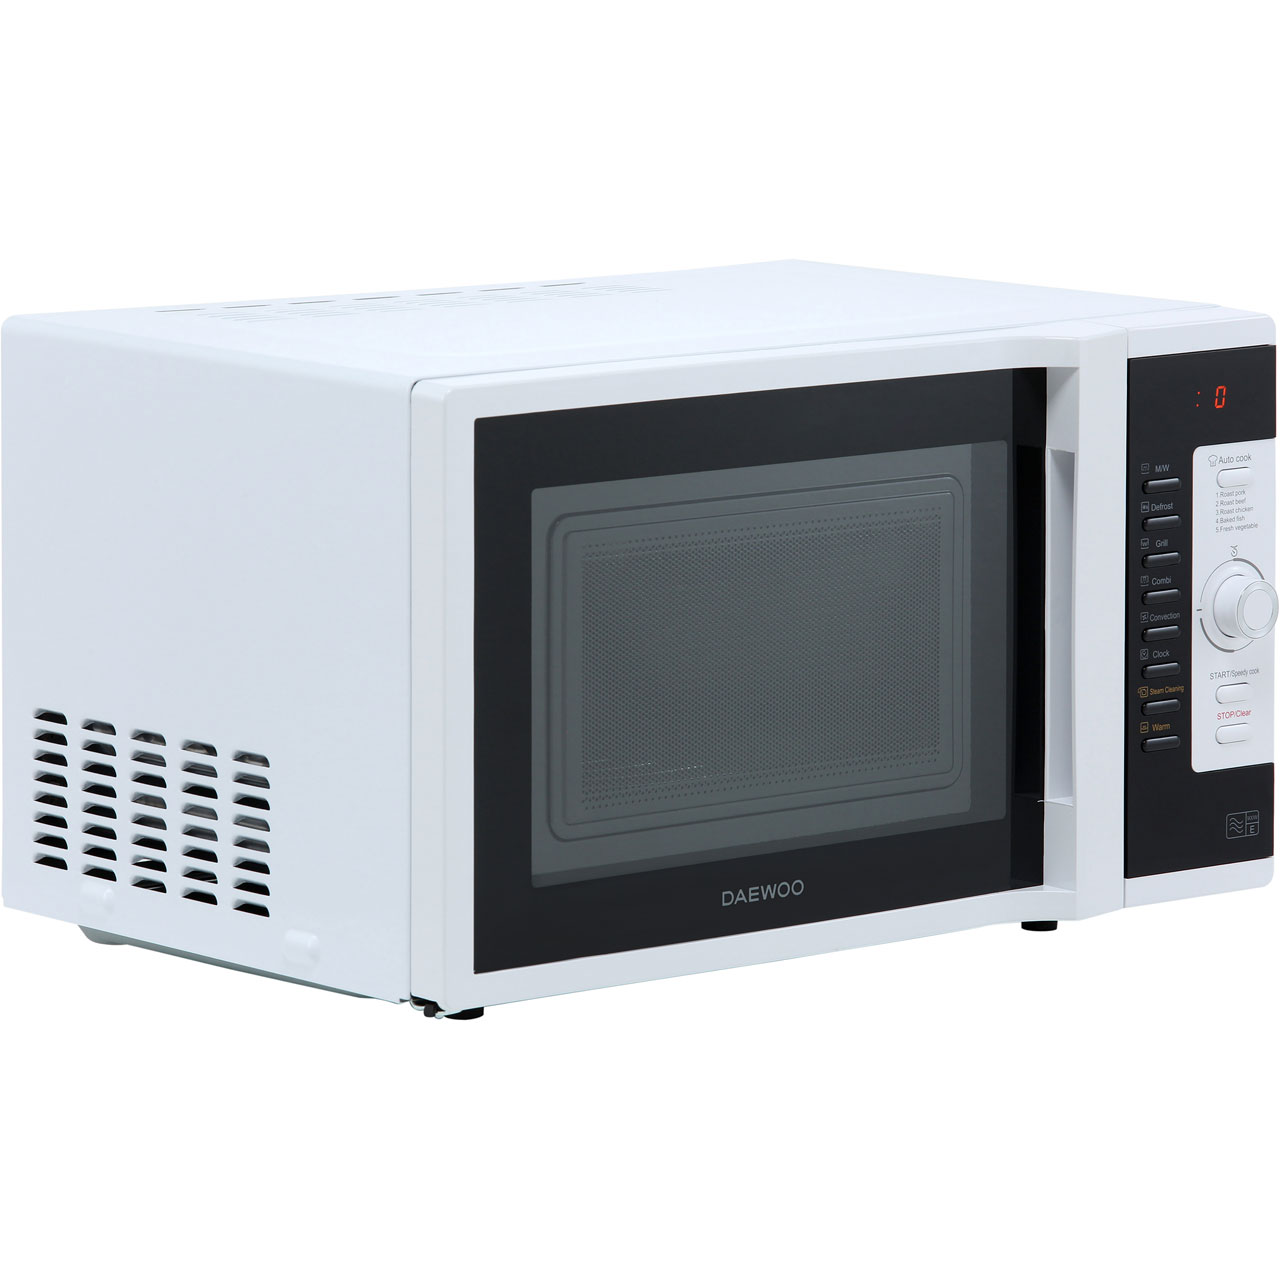 Daewoo Microwave Convection Oven Bestmicrowave